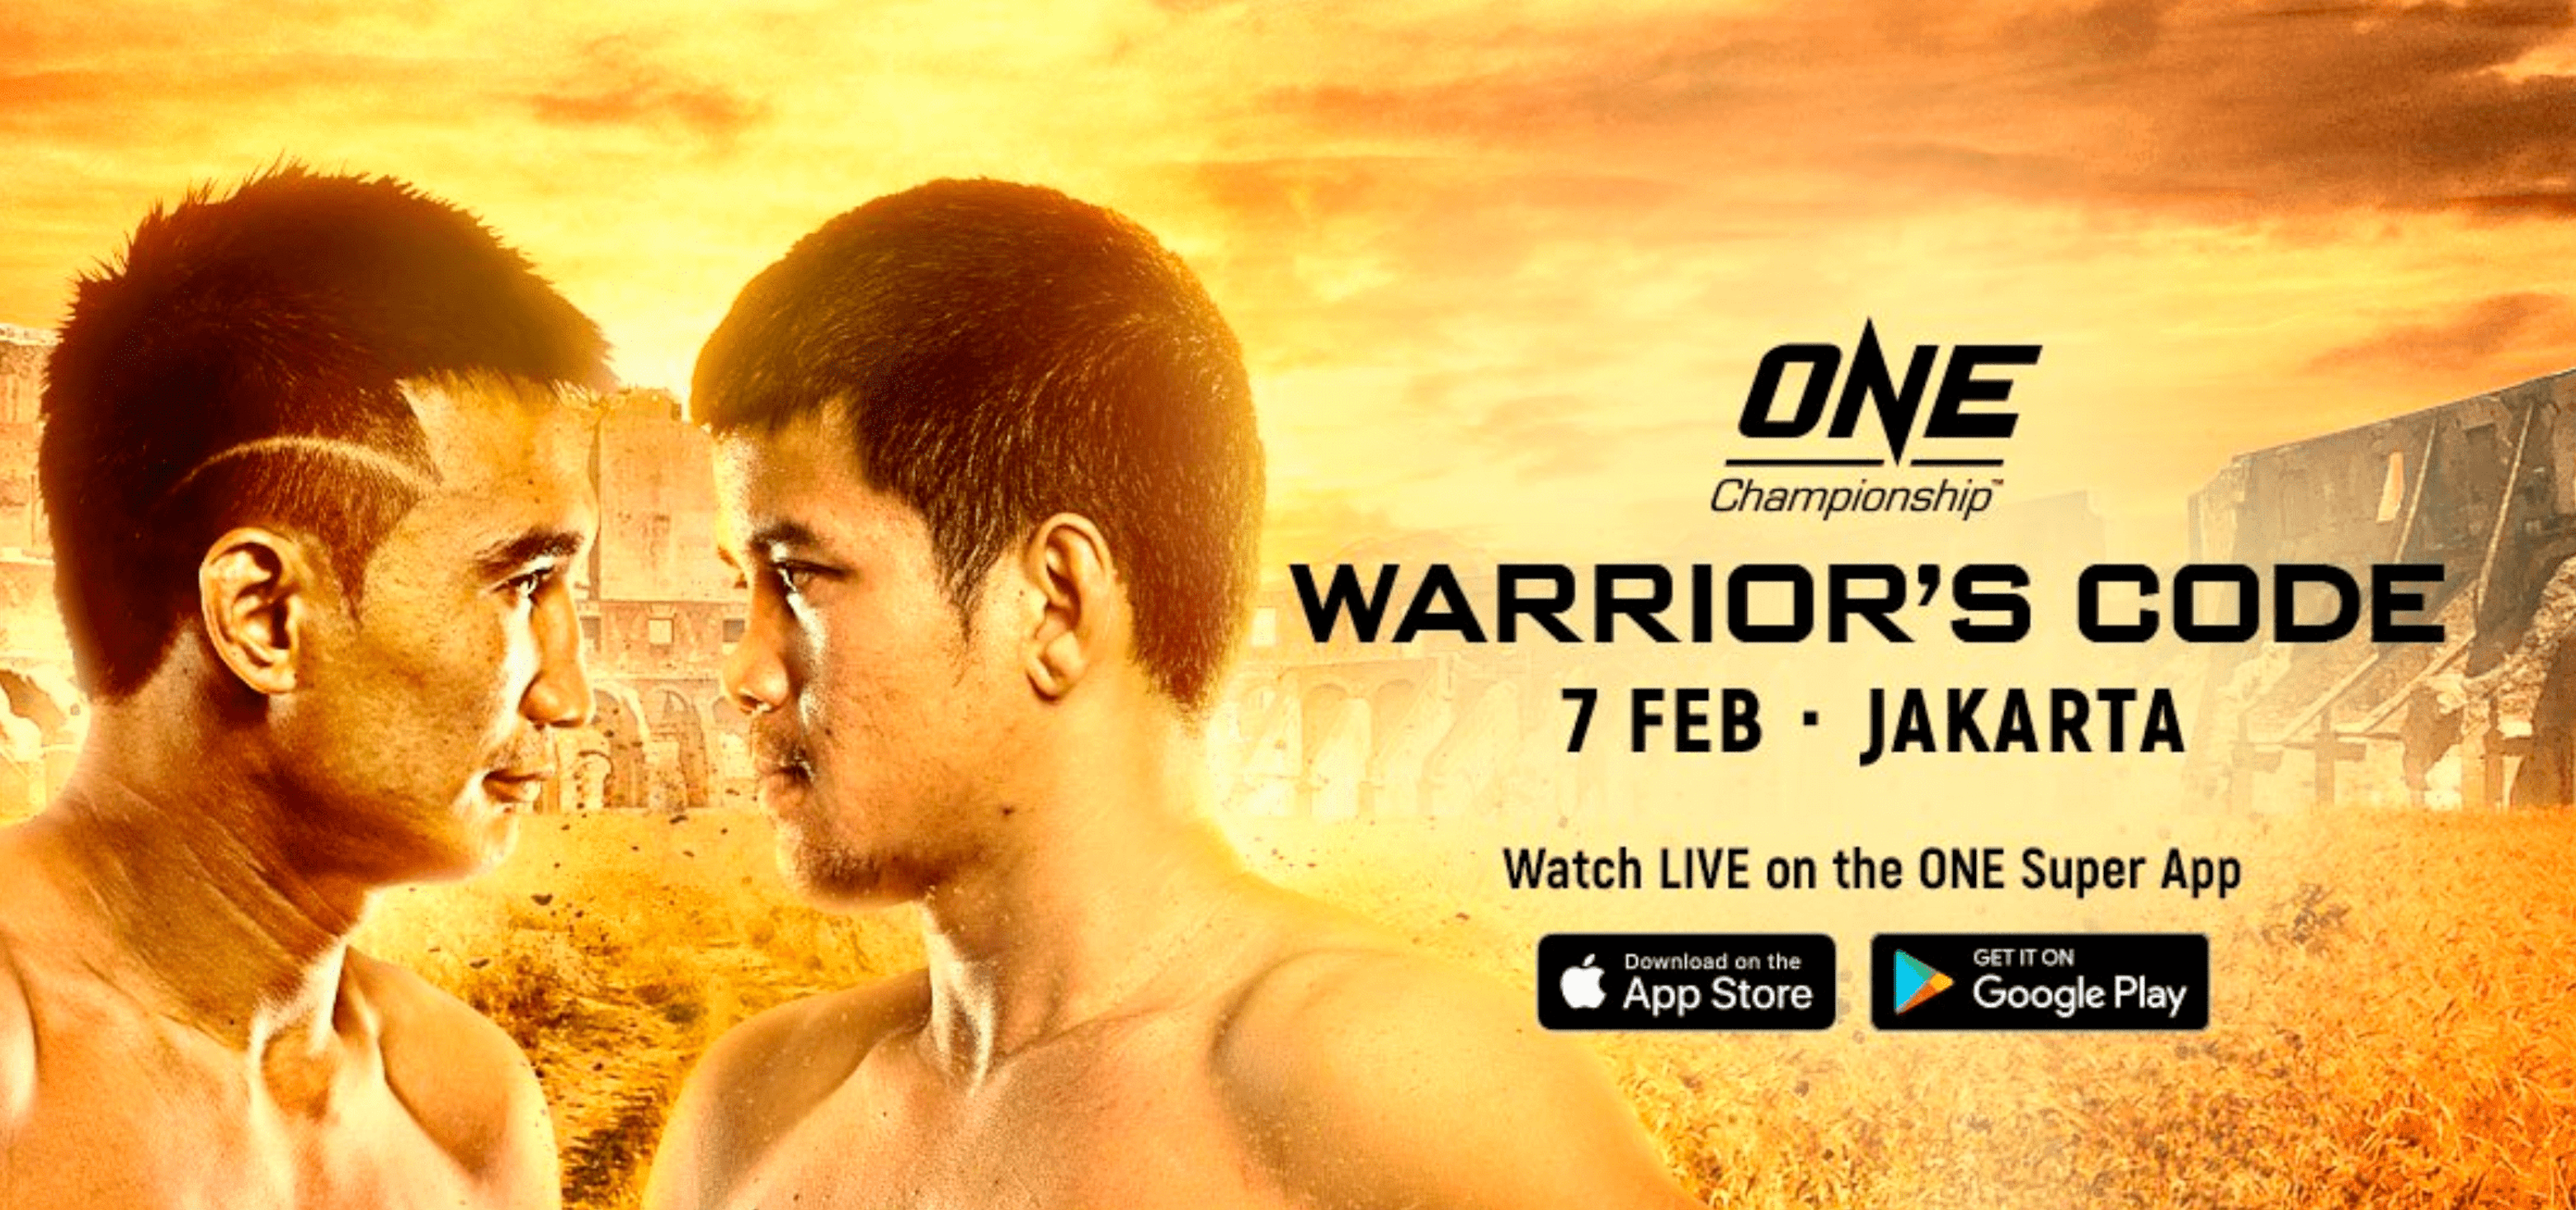 ONE: Warrior's Code Pre-Fight Interviews And Weigh-In Results